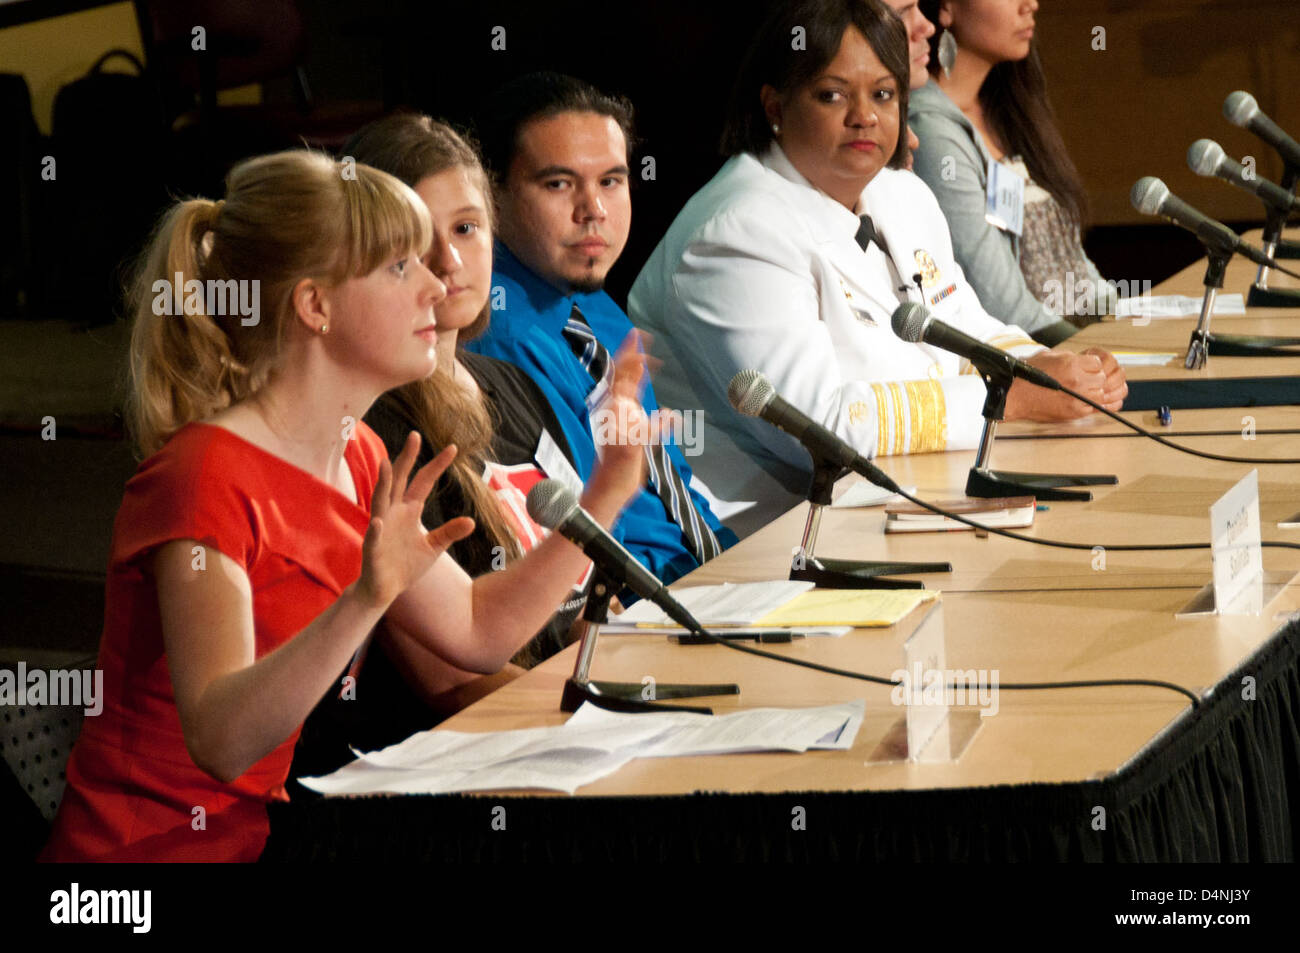 Youth Tobacco Town Hall Meeting_6751 - Stock Image